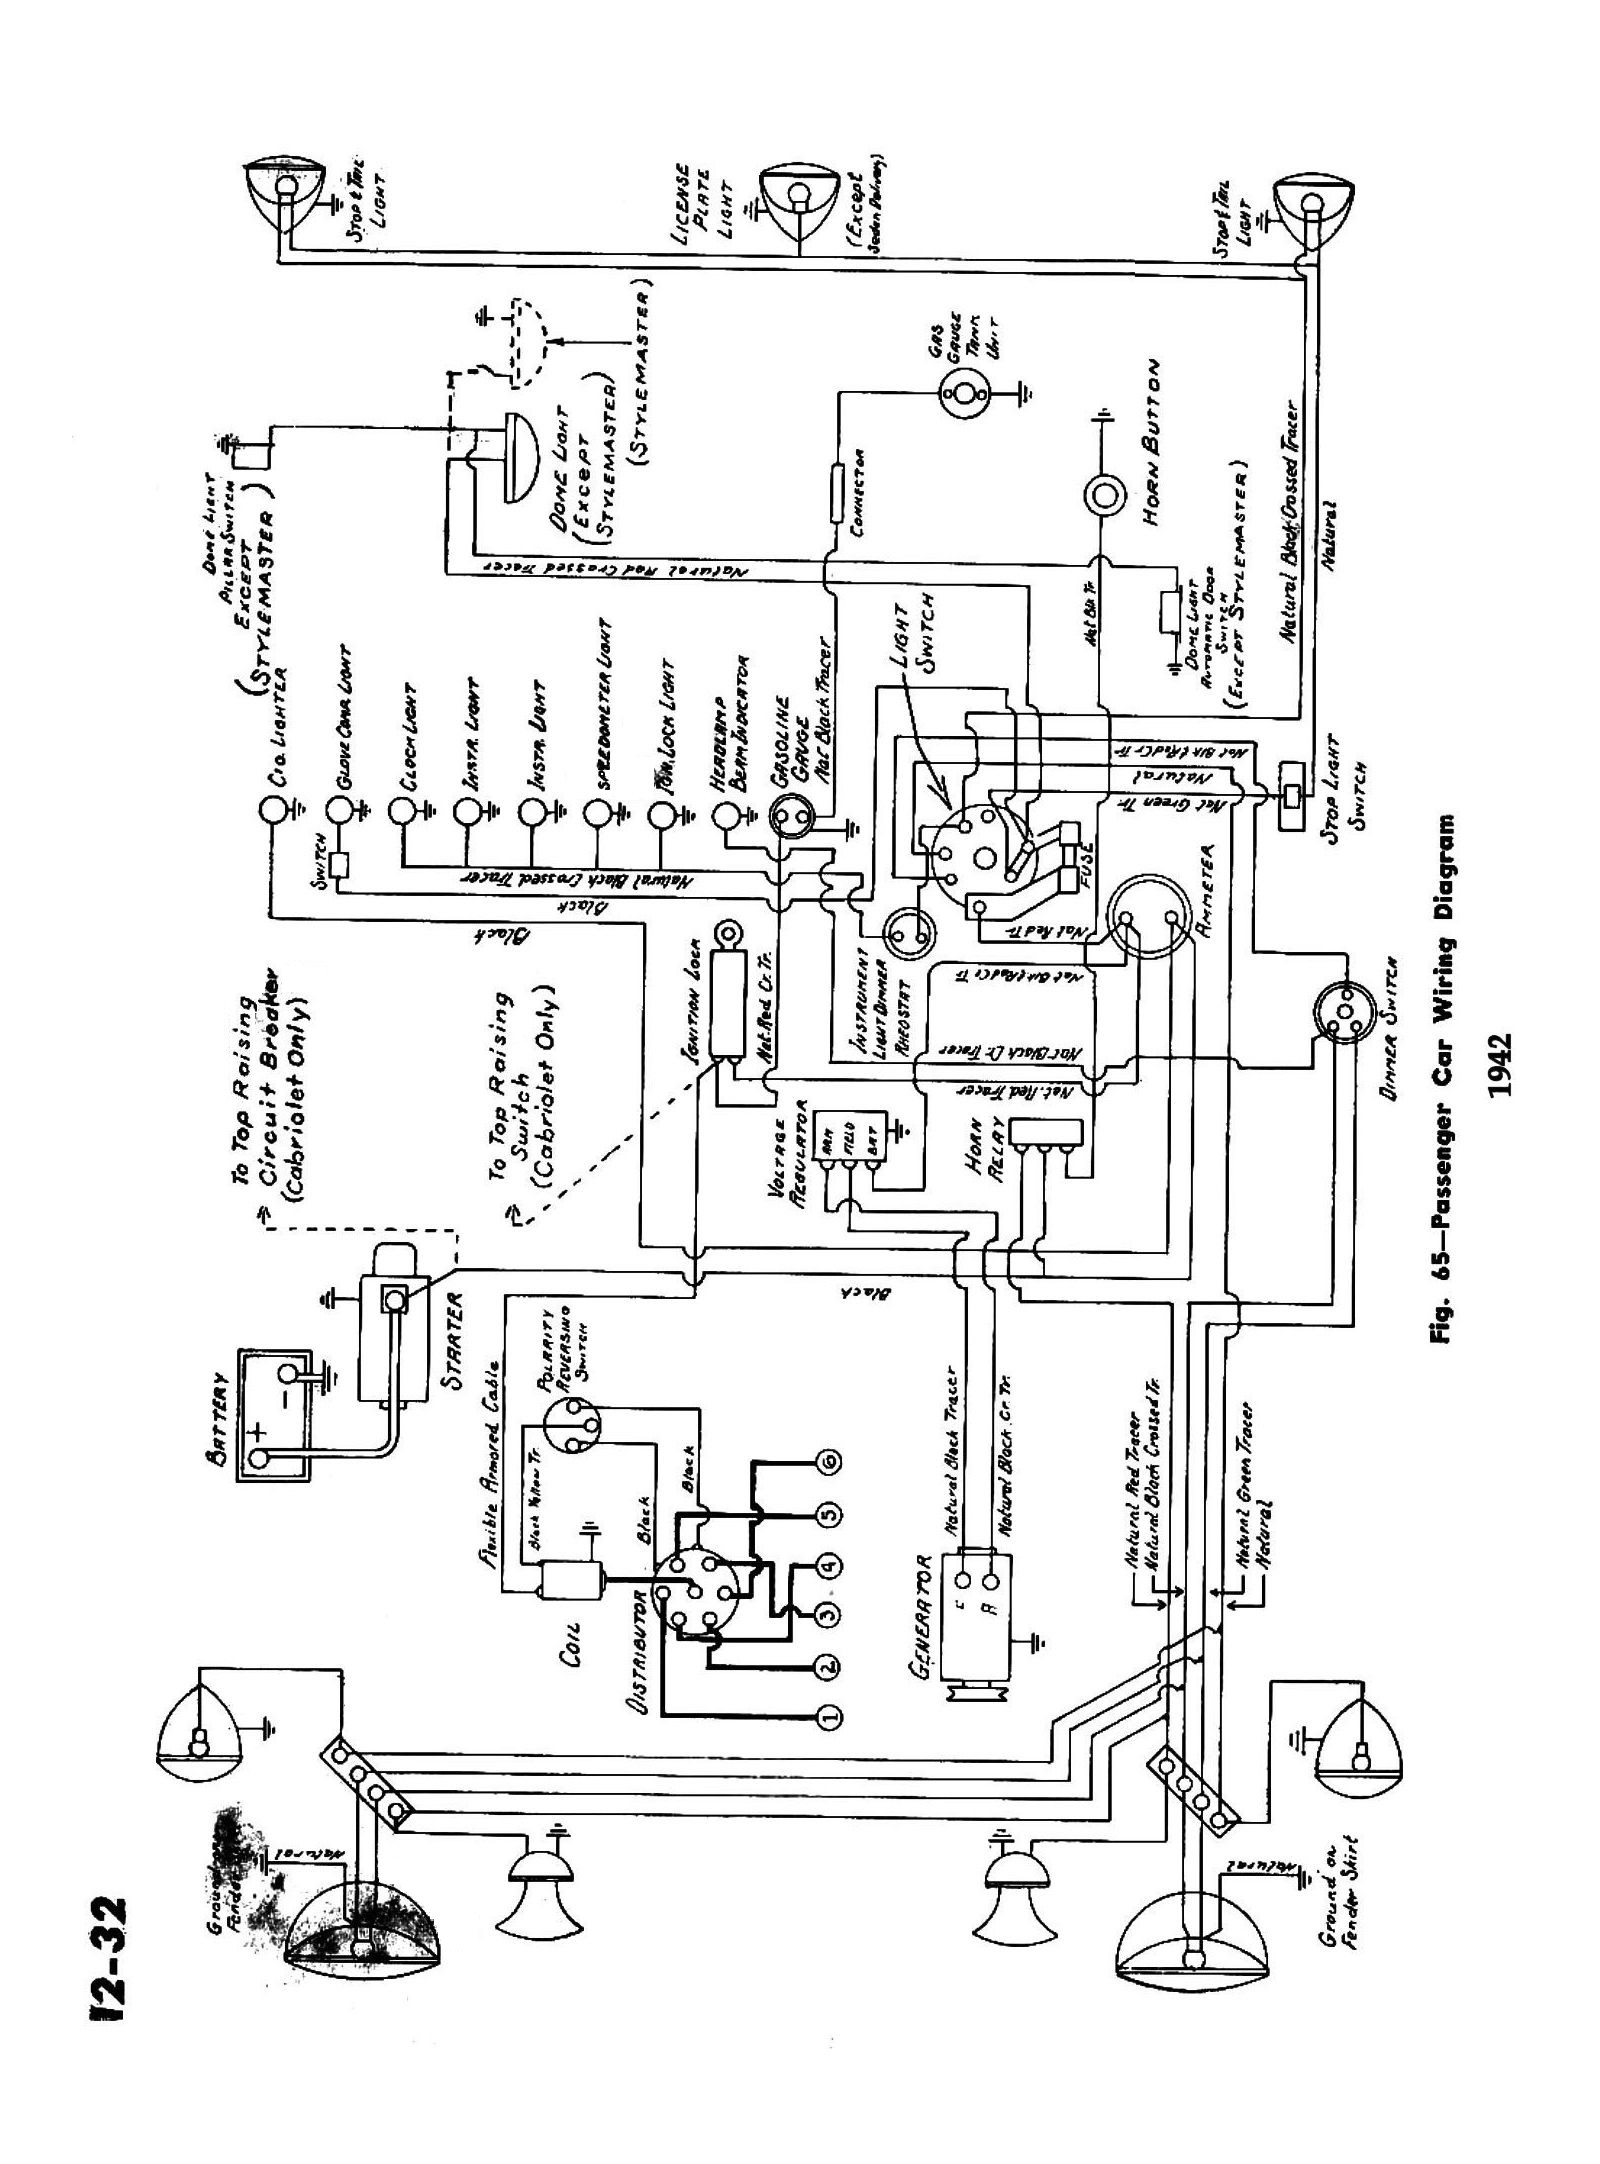 hight resolution of 1946 gauge wiring diagram wiring diagram paper46 chevy sedan wiring diagram wiring diagram paper 1946 chevy